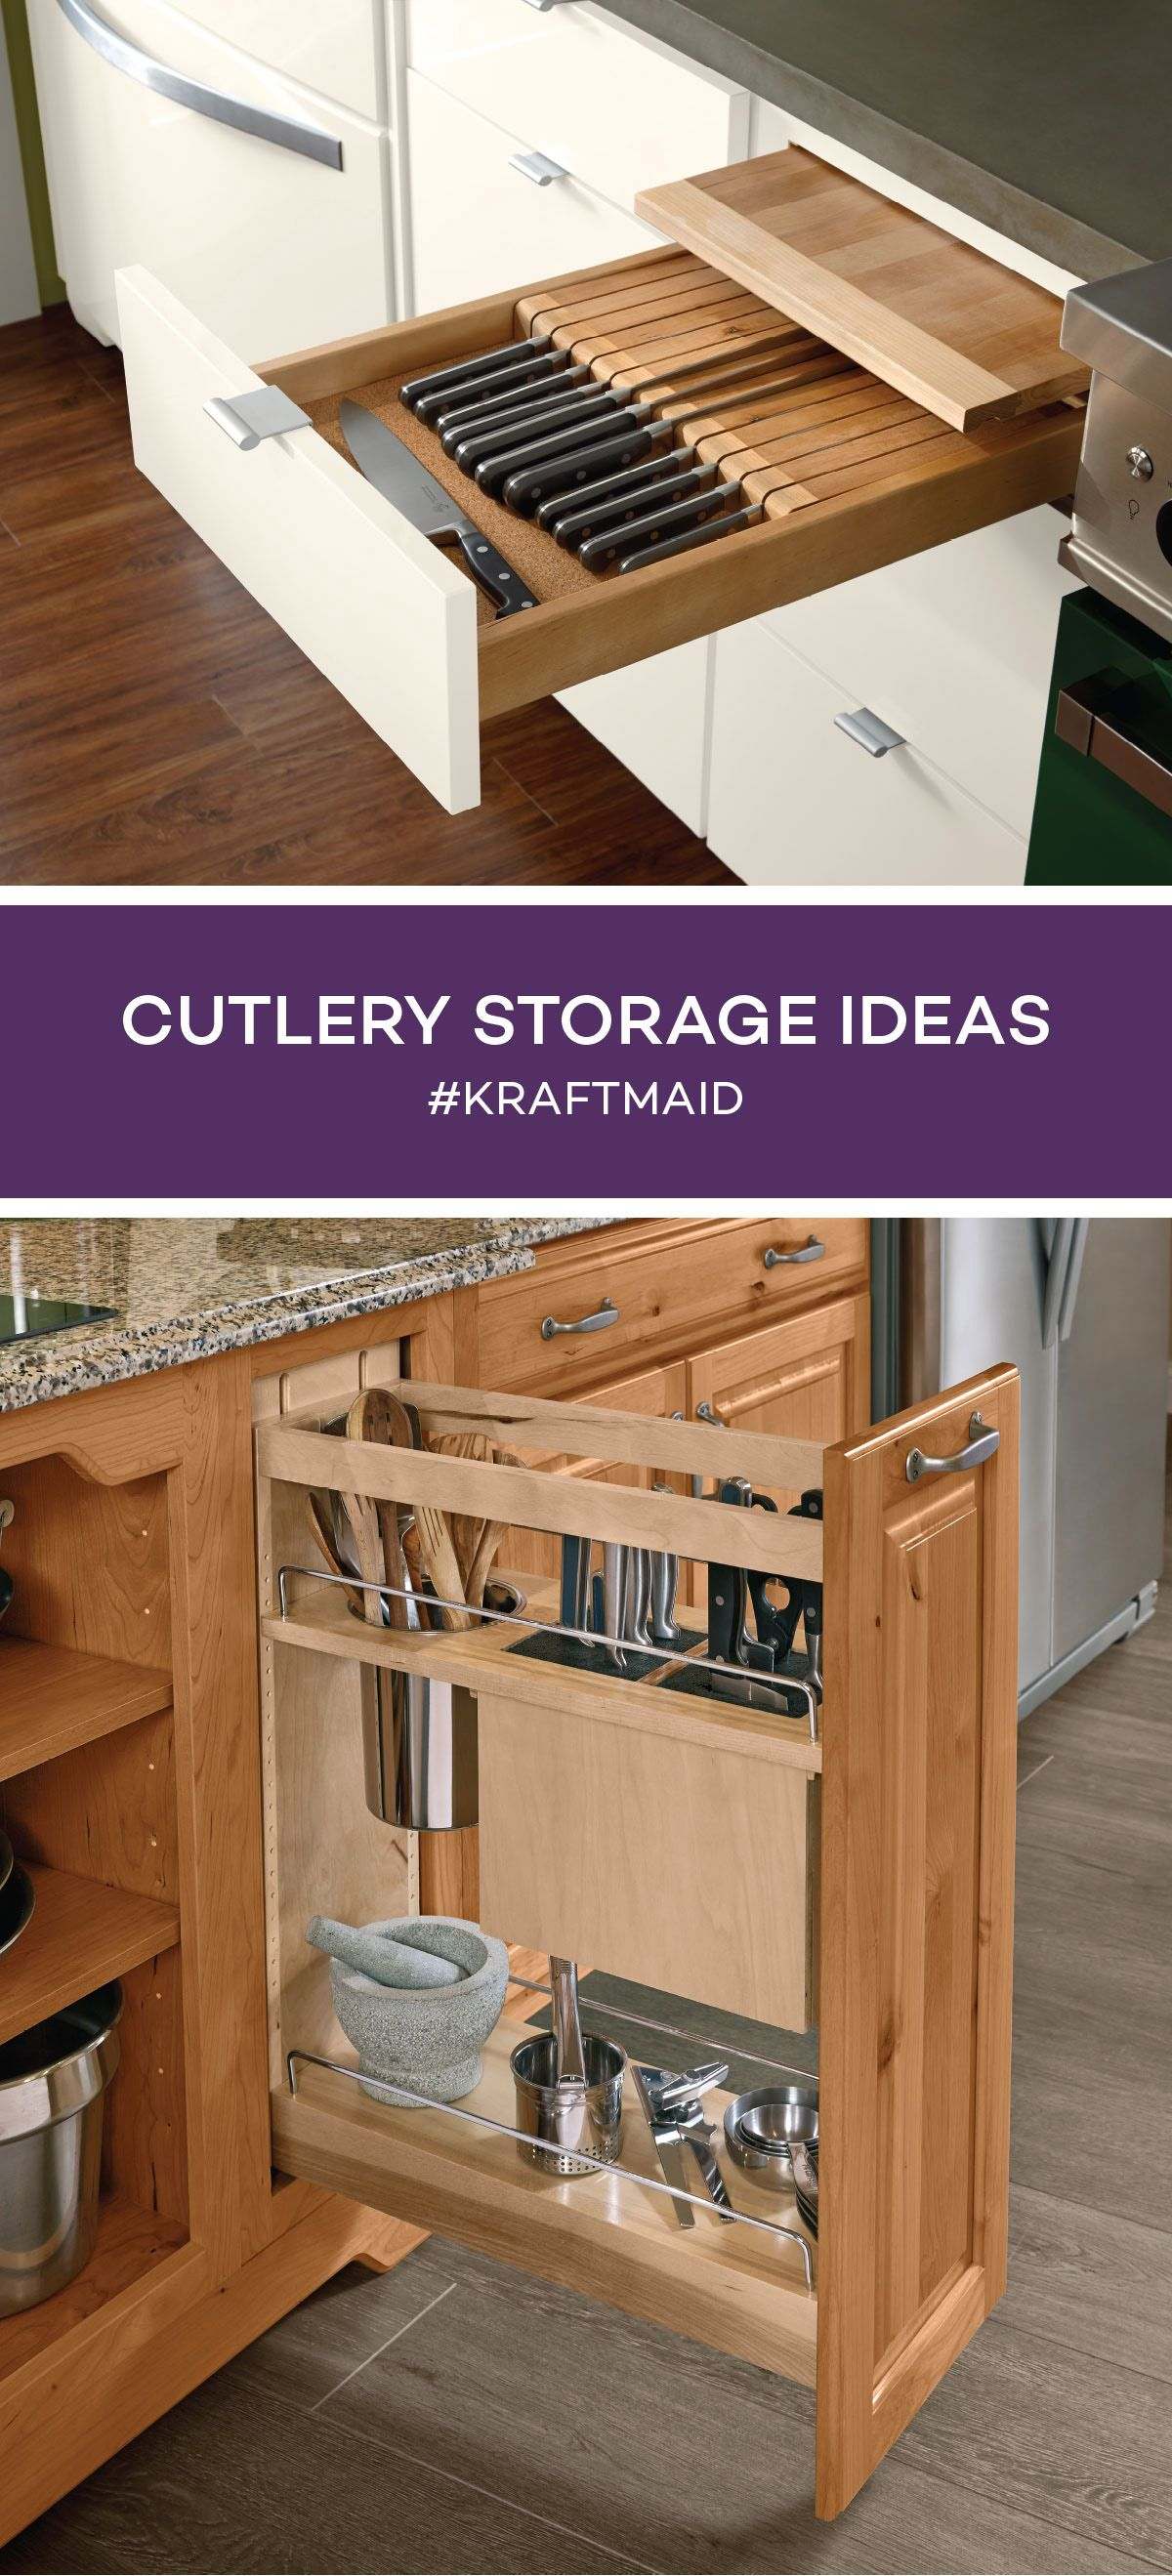 There are many ways to store cutlery in your kitchen. Here are a few ...